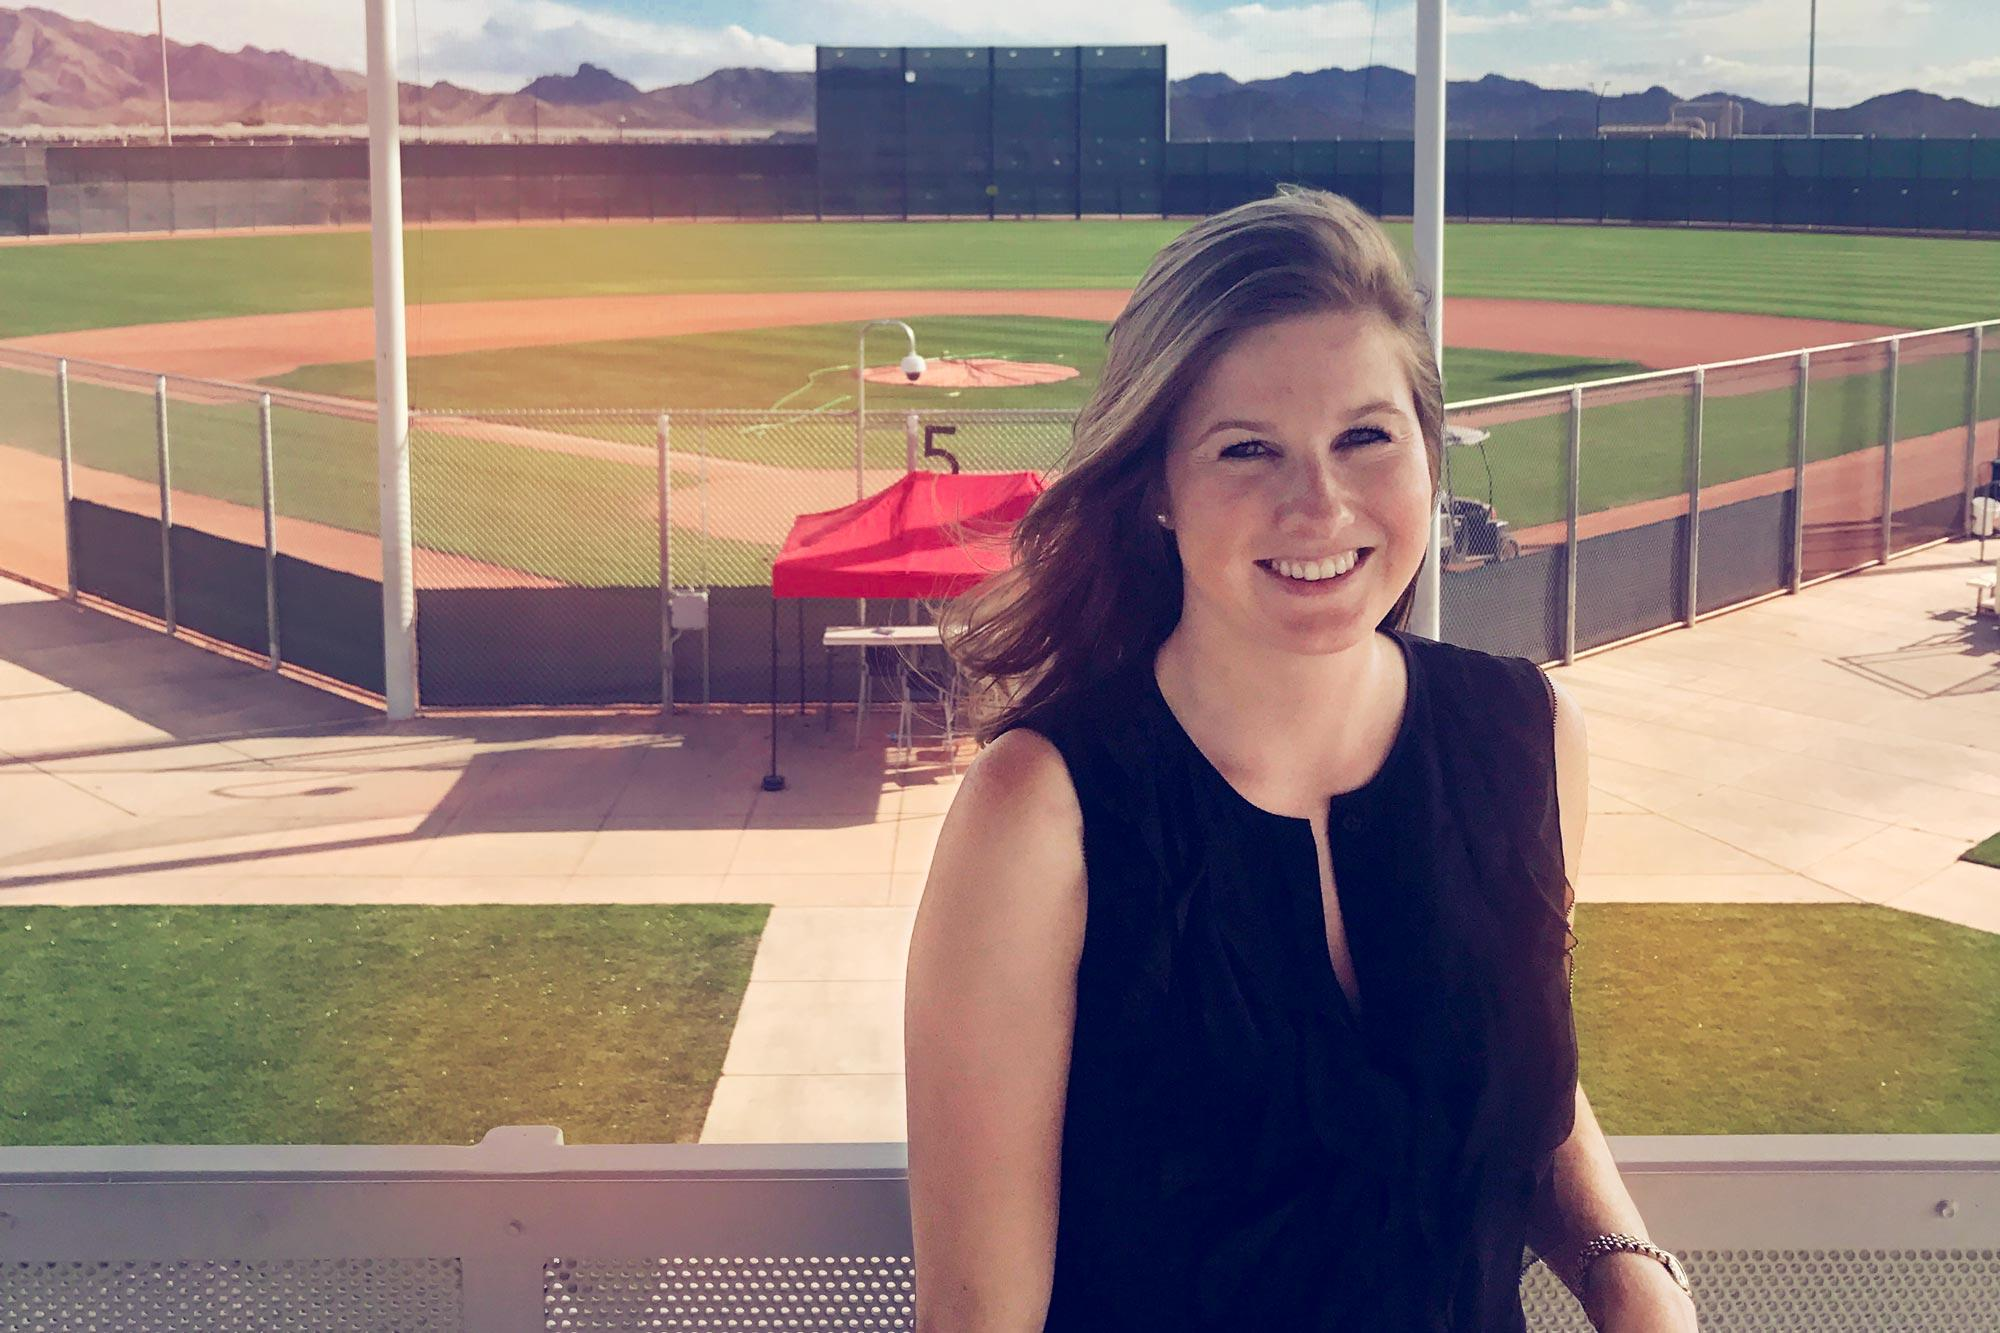 Alumna Haley Alvarez is on her way to achieving her goal of becoming the first female general manager of a Major League Baseball team. (Photo courtesy of Haley Alvarez)